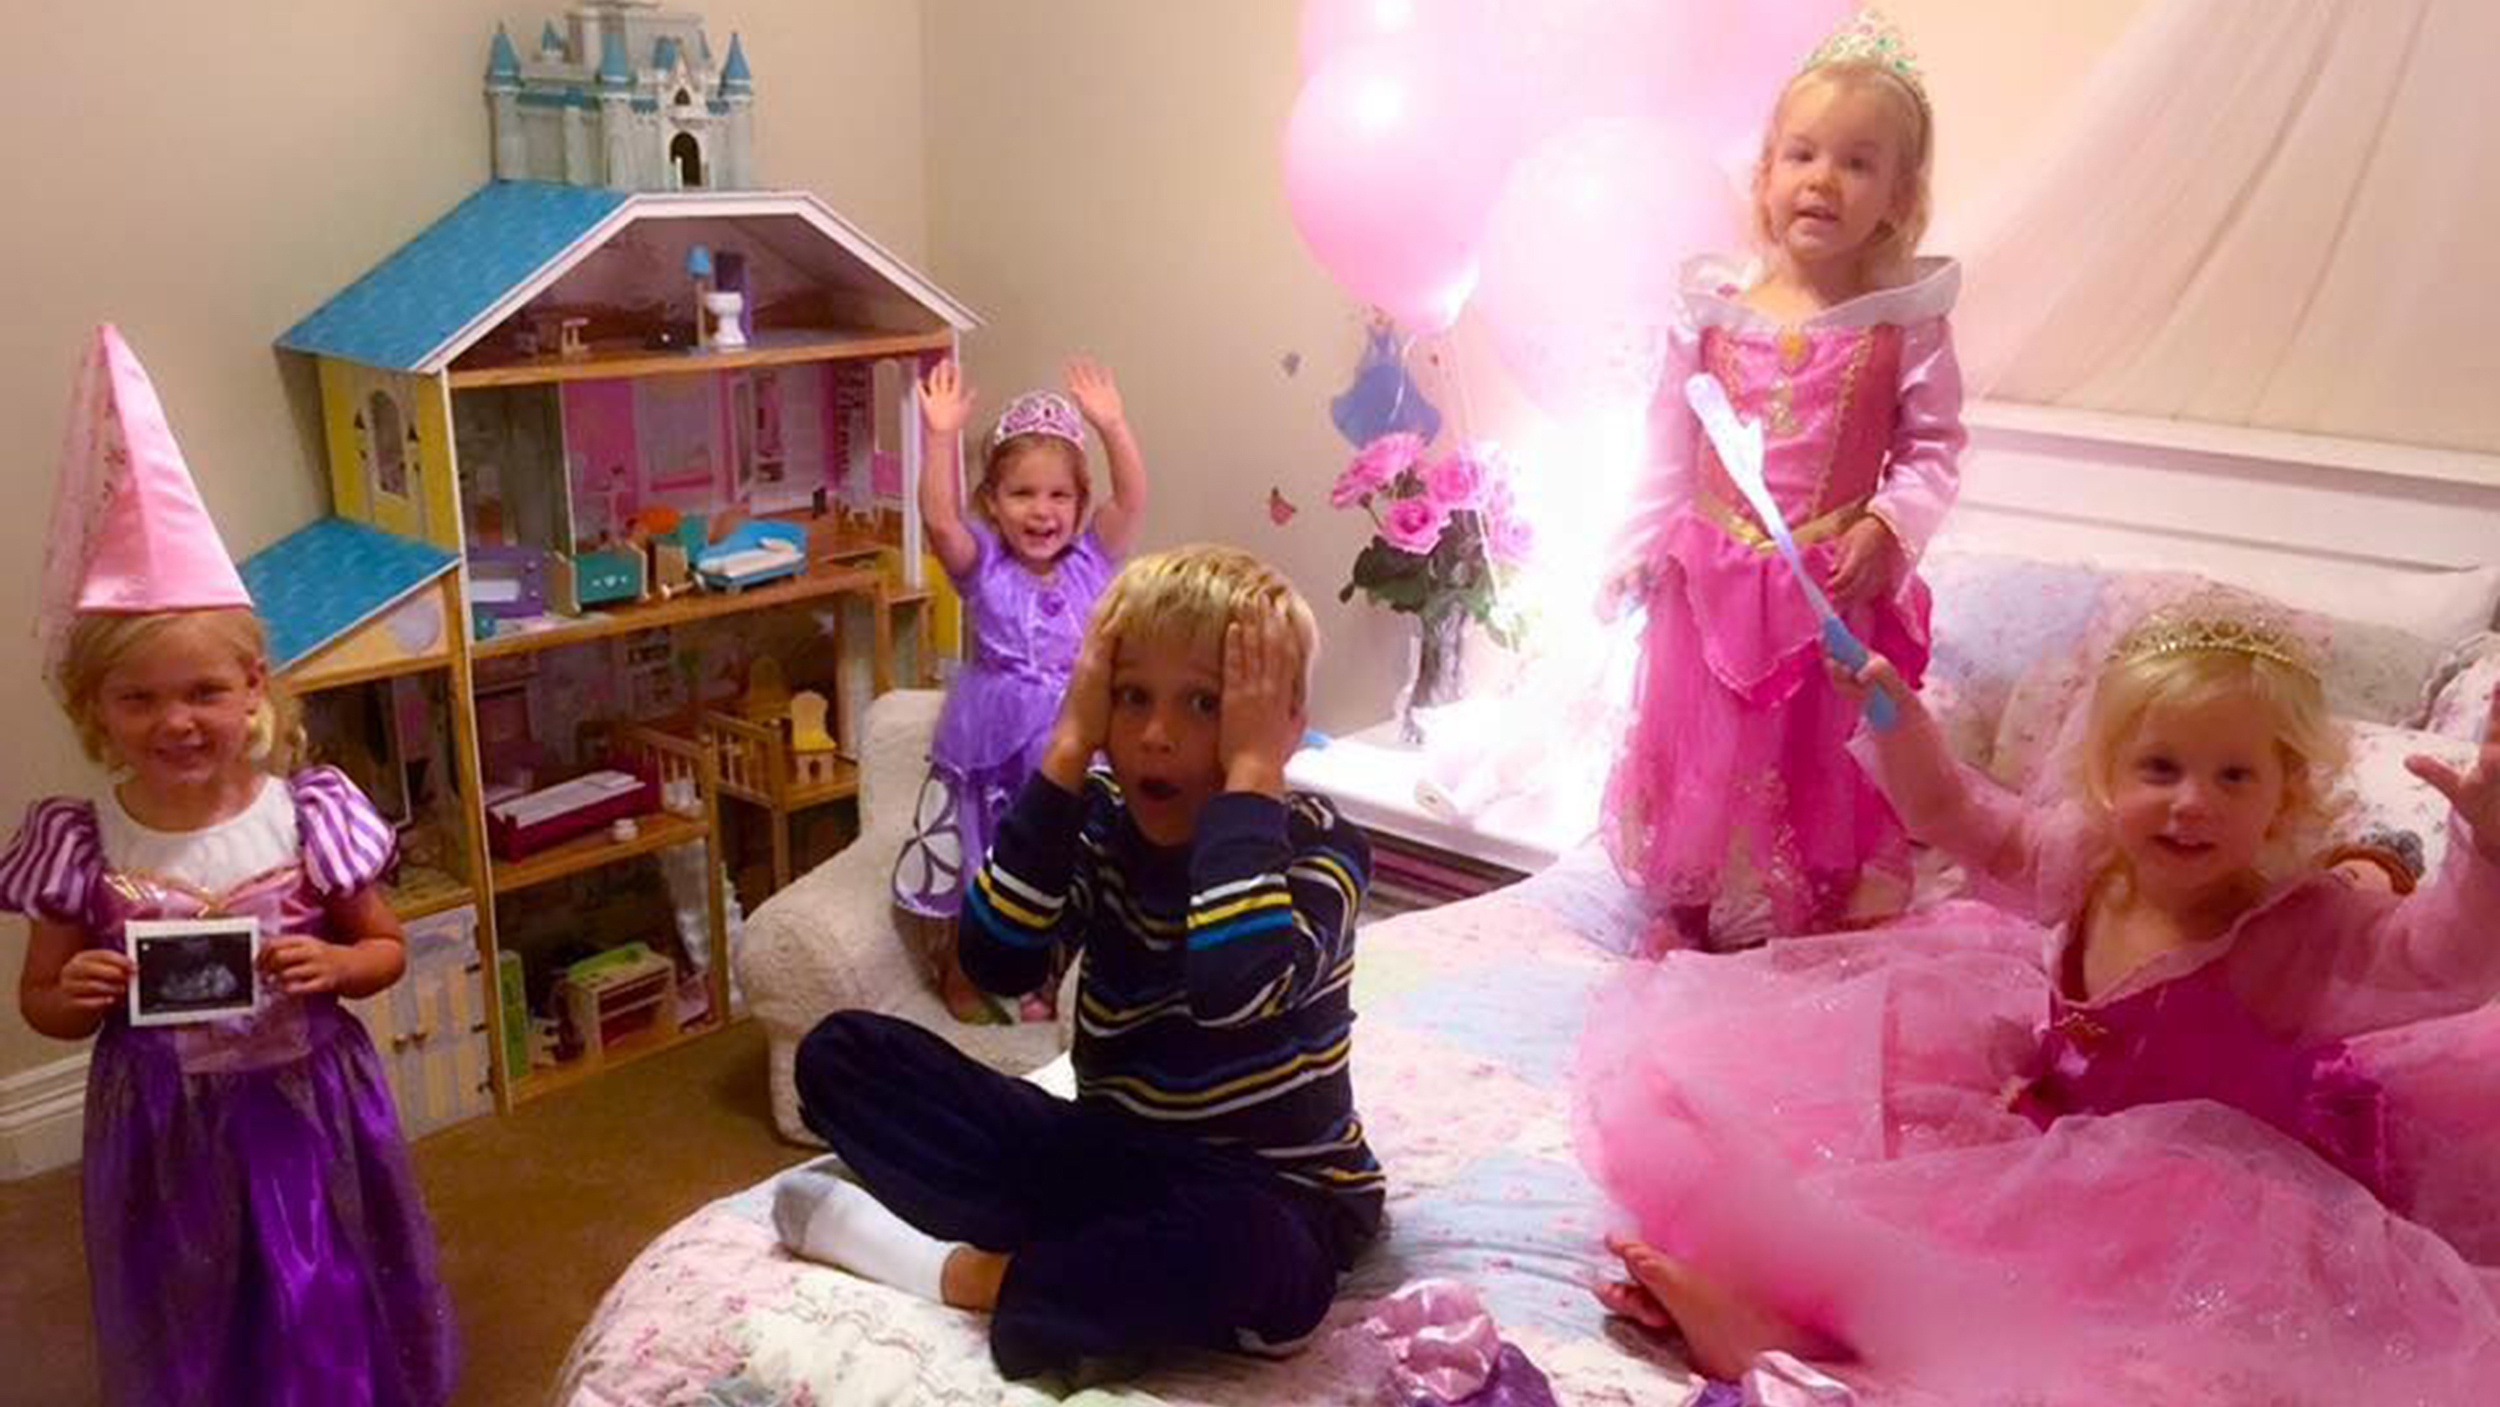 This Boy S Reaction To Having A Fifth Sister Is Priceless